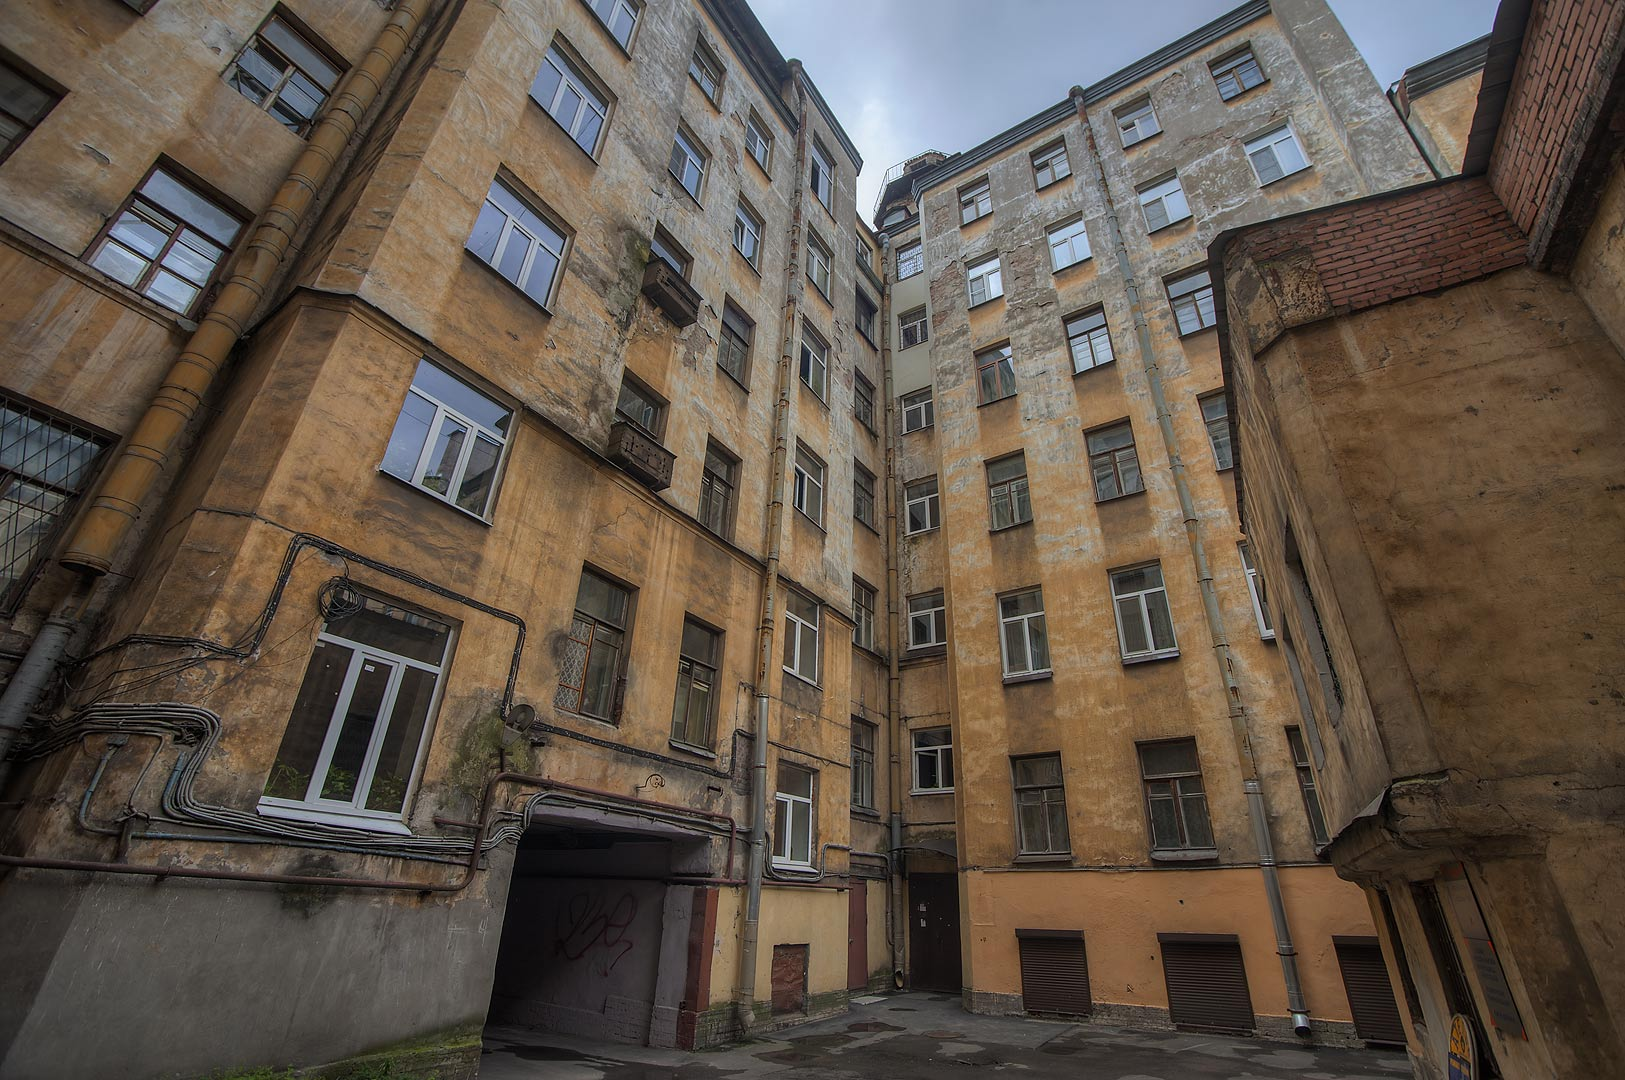 Courtyard in Sementsy area near Vitebsky Train Station. Petersburg, Russia